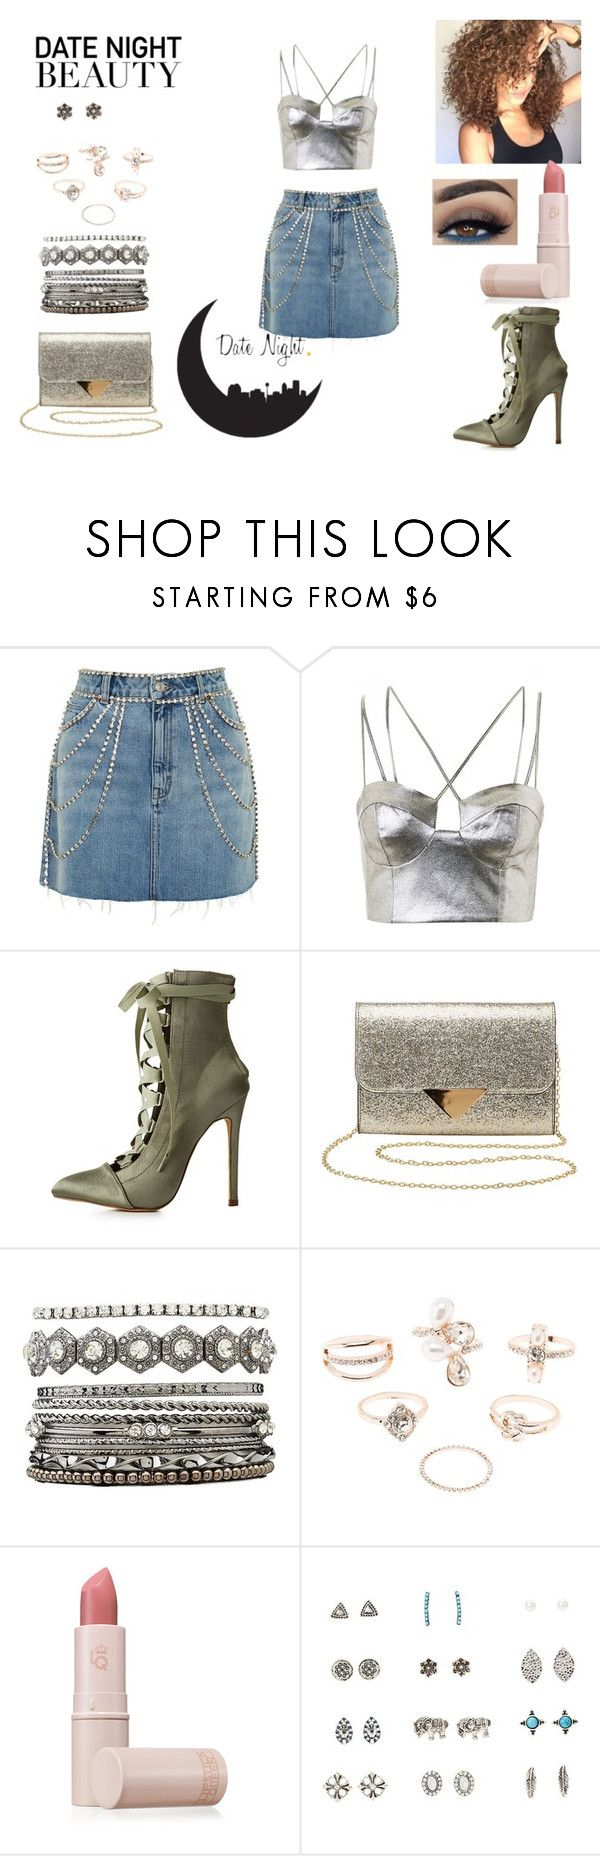 """Date Night with only Topshop & Charlotte Rousse Products"" by kayarchetypal ❤ liked on Polyvore featuring Topshop, Charlotte Russe, Lipstick Queen, DateNight, Silver, topshop and charlotterousse"